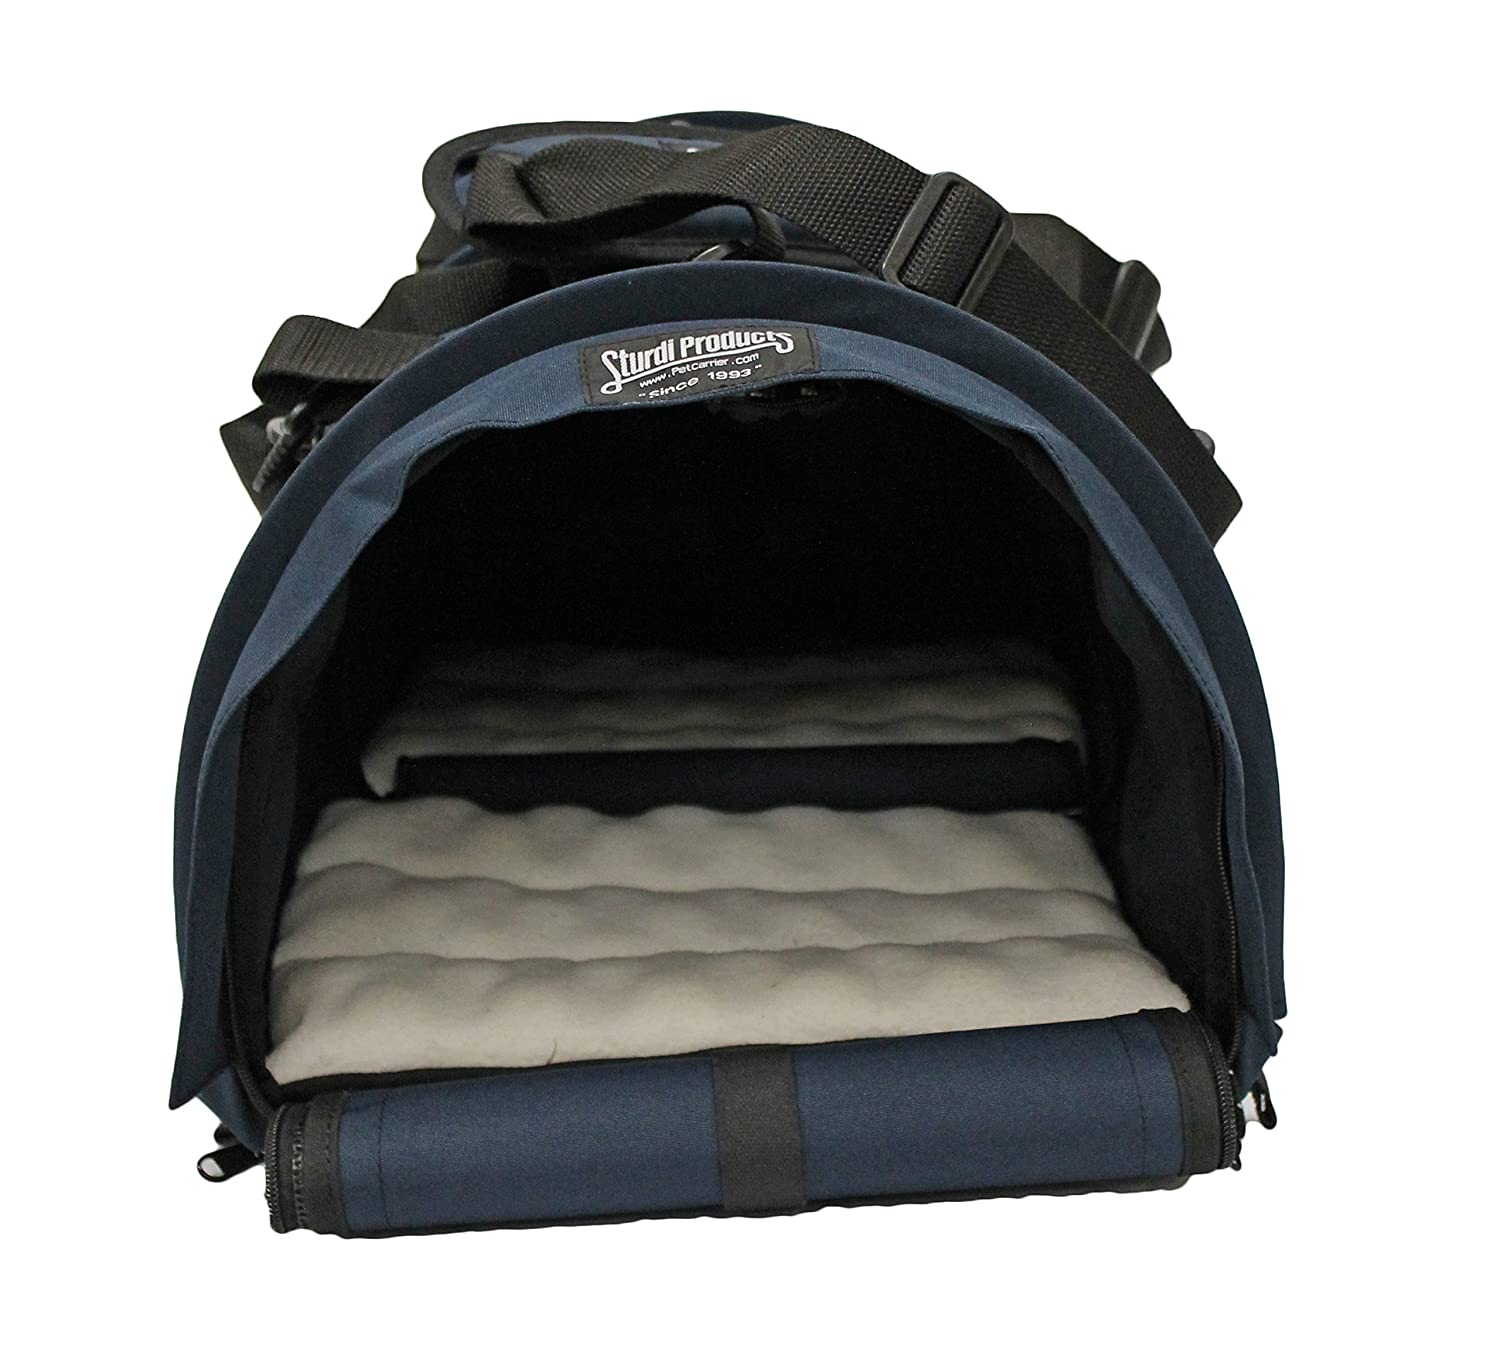 Sturdi Products SturdiBag Double Sided Divided Pet Carrier, Large, Navy SB2D-N